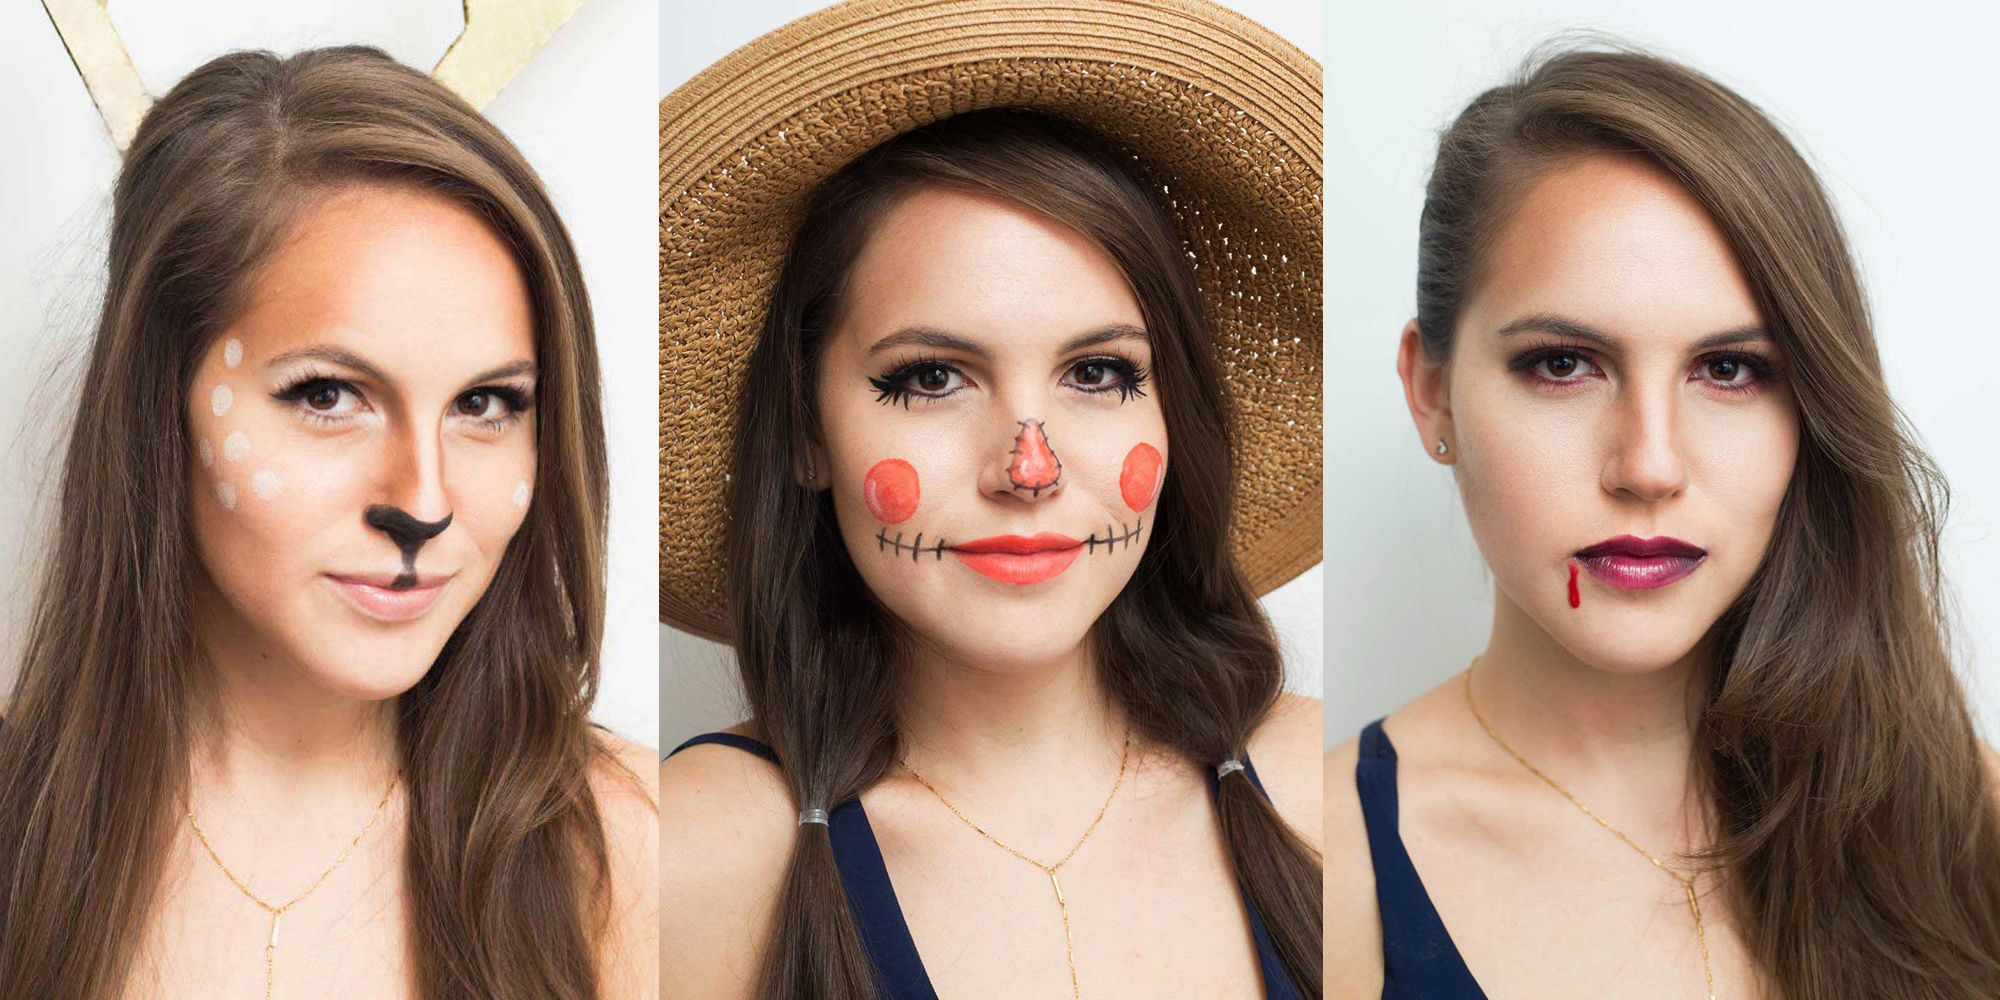 10 Easy Halloween Makeup Ideas and Costume Tutorials for 2019